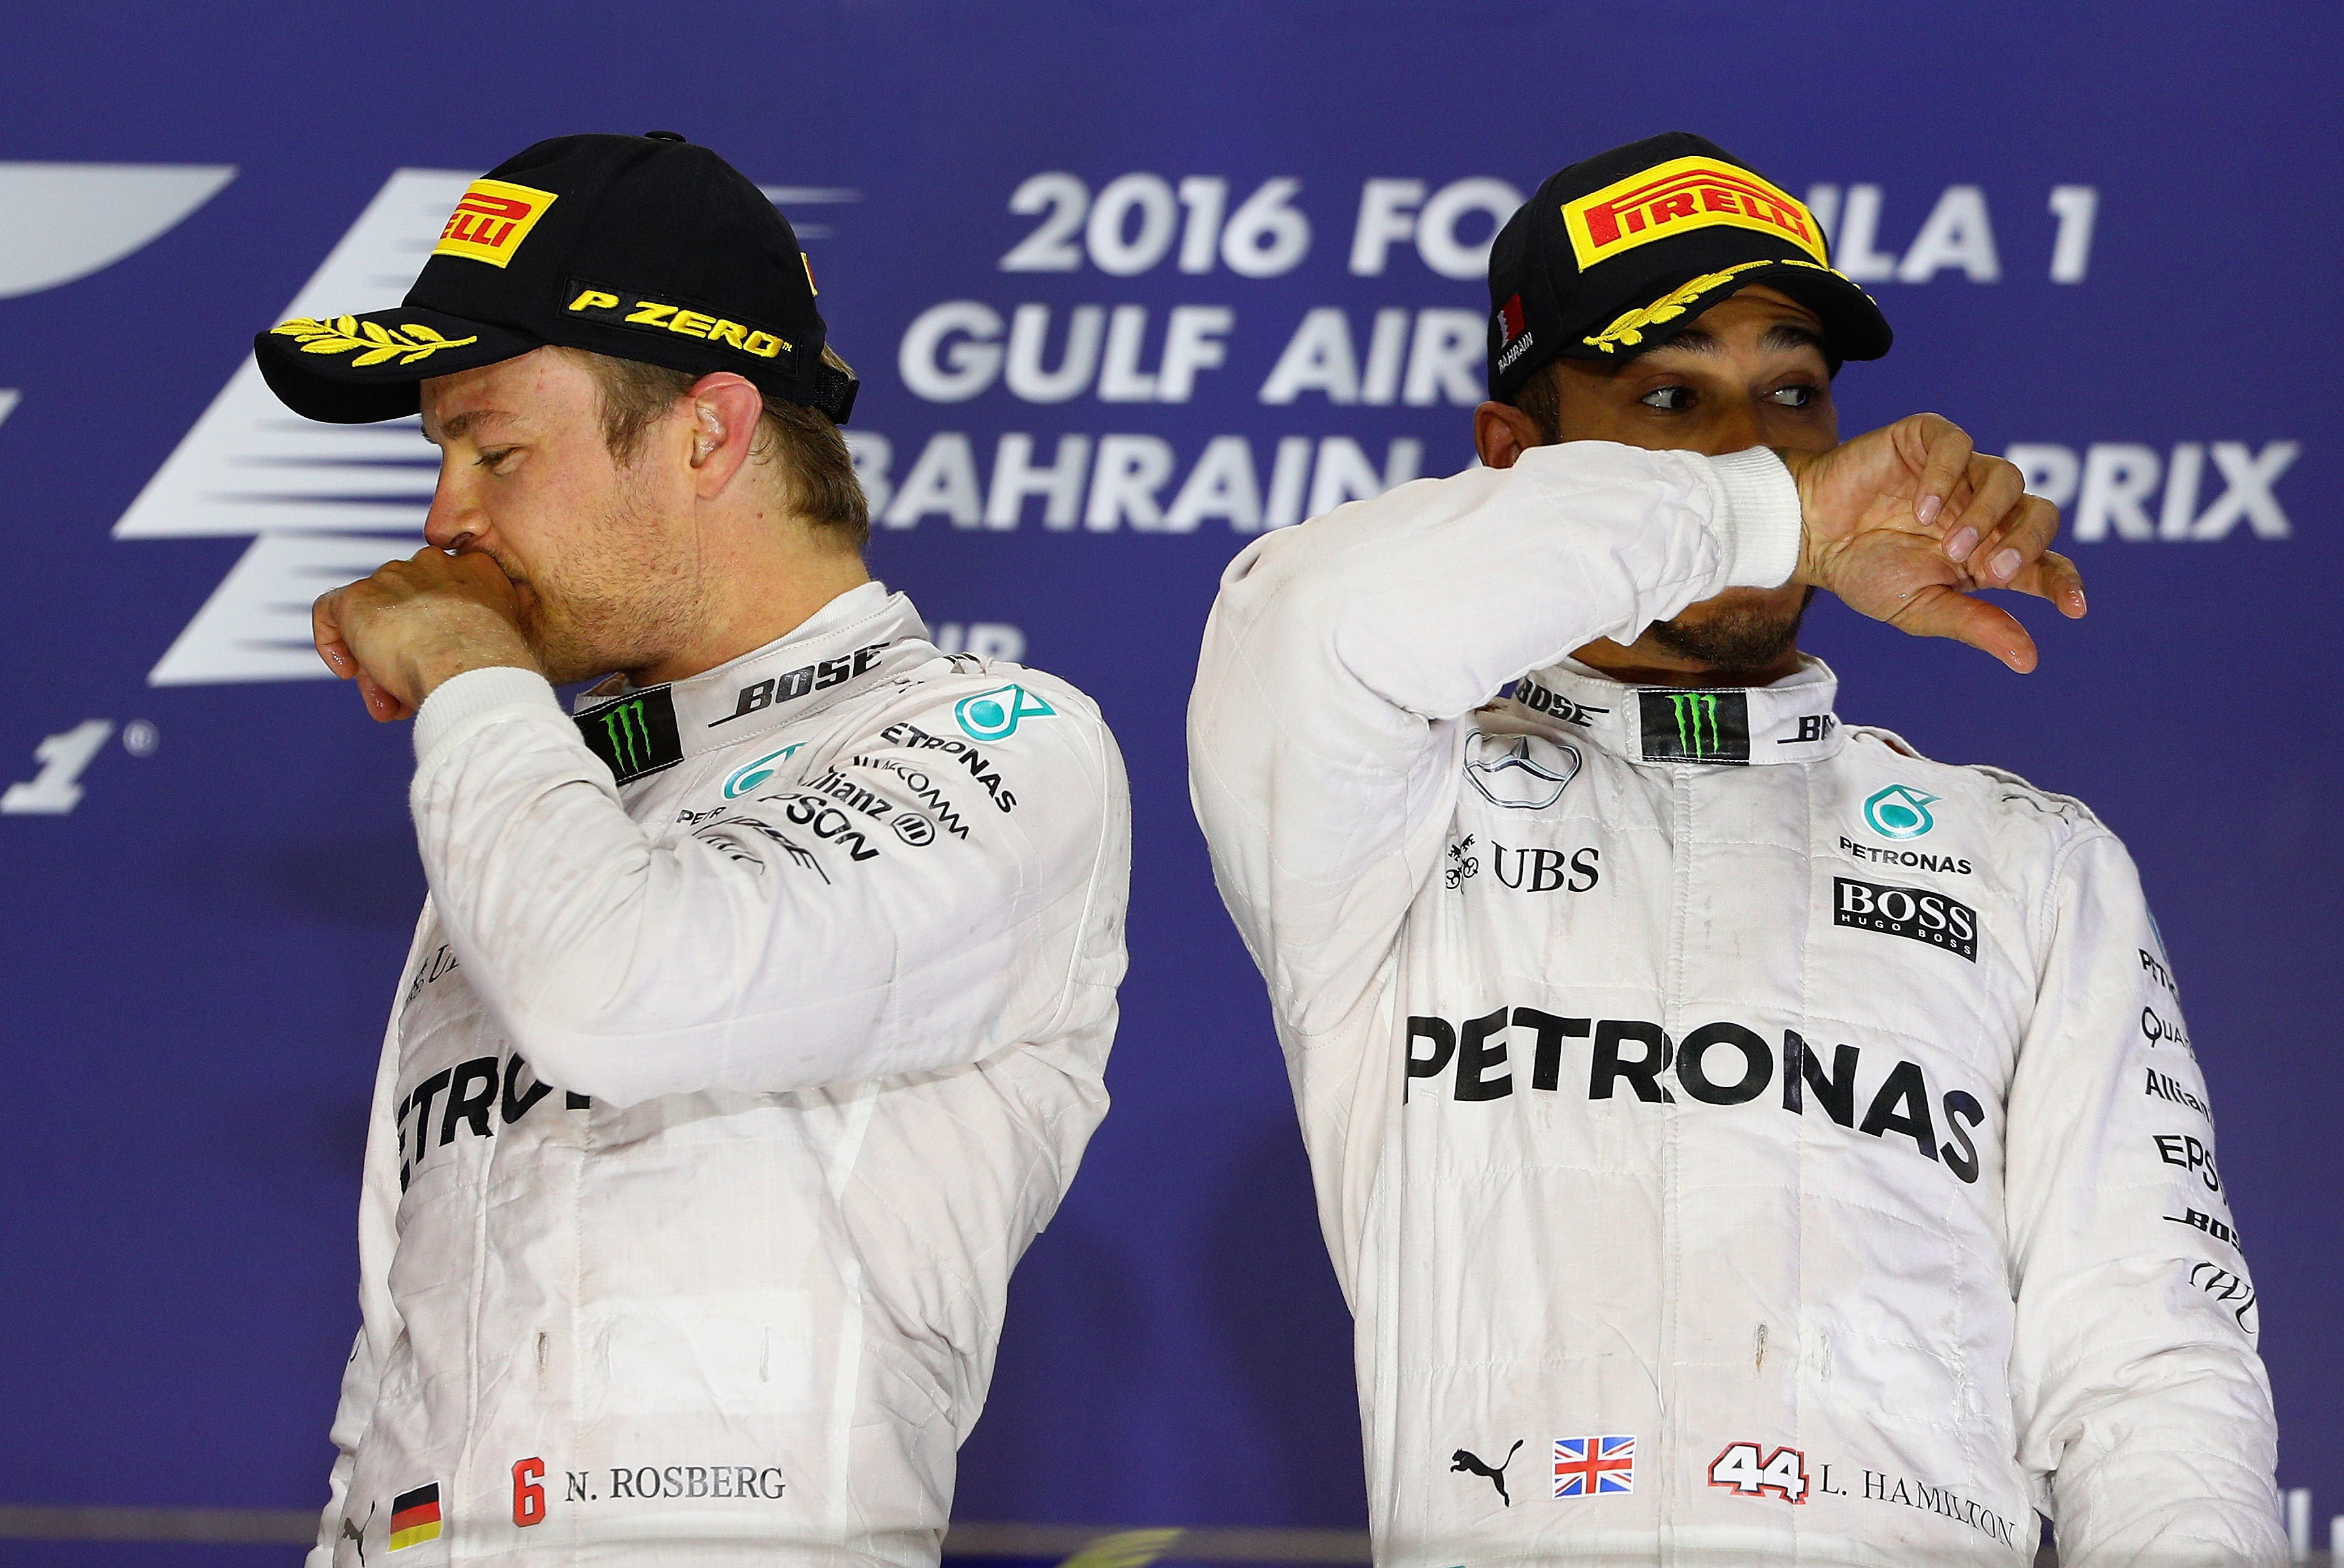 Formula One drivers Lewis Hamilton and Nico Rosberg embroiled in 'ridiculous' spat over restaurant bill